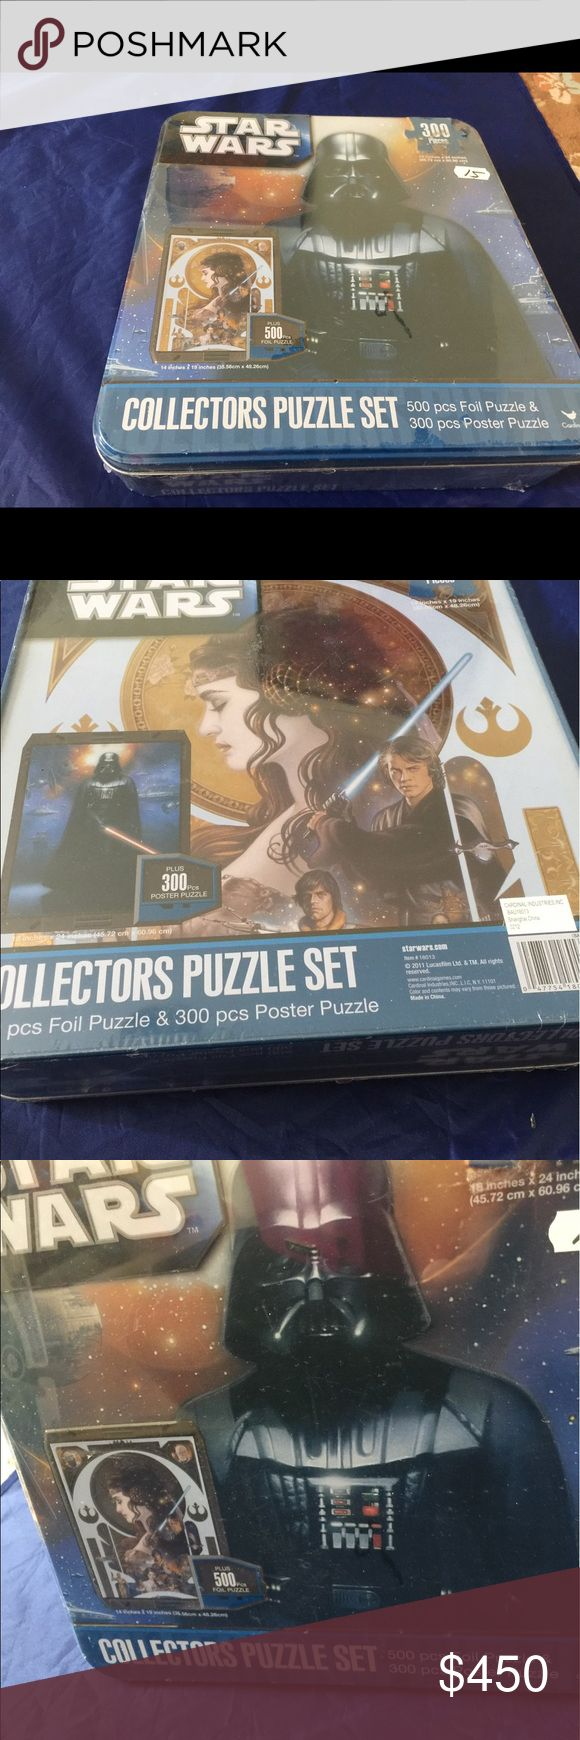 COLLECTOR PUZZLE SET STAR WARS 300 Pieces WOOW COLLECTIVE PUZZLE SET 500 pcs Foil puzzle&300 Poster puzzle-original box never used it!COLLECTOR PUZZLE SET STAR WARS original price$35.00 Star Wars Other